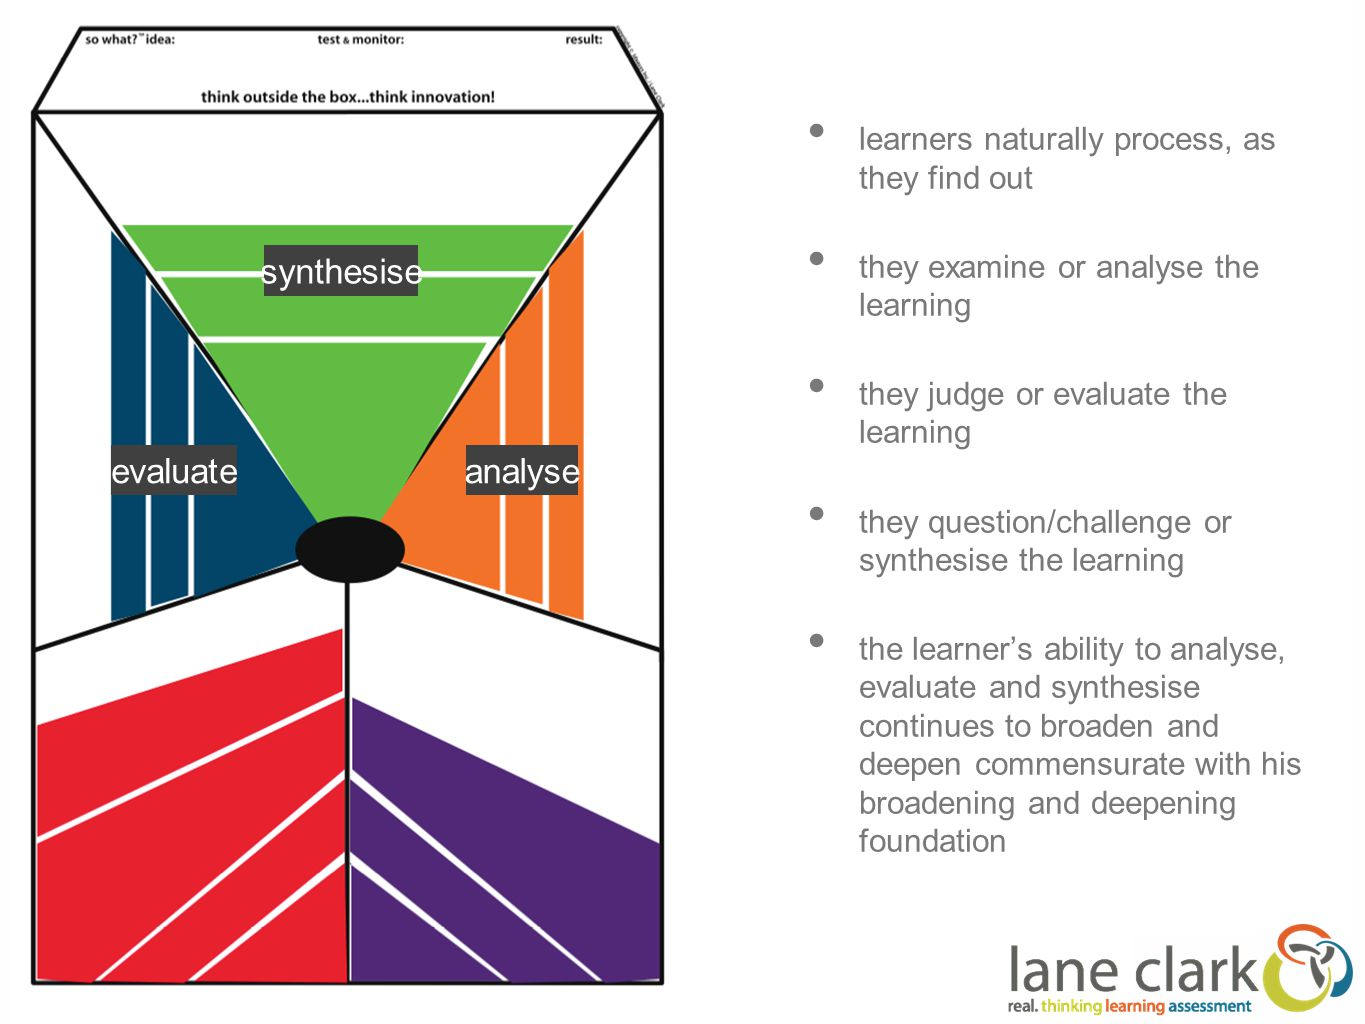 learners naturally process, as they find out they examine or analyse the learning they judge or evaluate the learning they question/challenge or synthesise the learning the learner's ability to analyse, evaluate and synthesise continues to broaden and deepen commensurate with his broadening and deepening foundation analyseevaluate synthesise